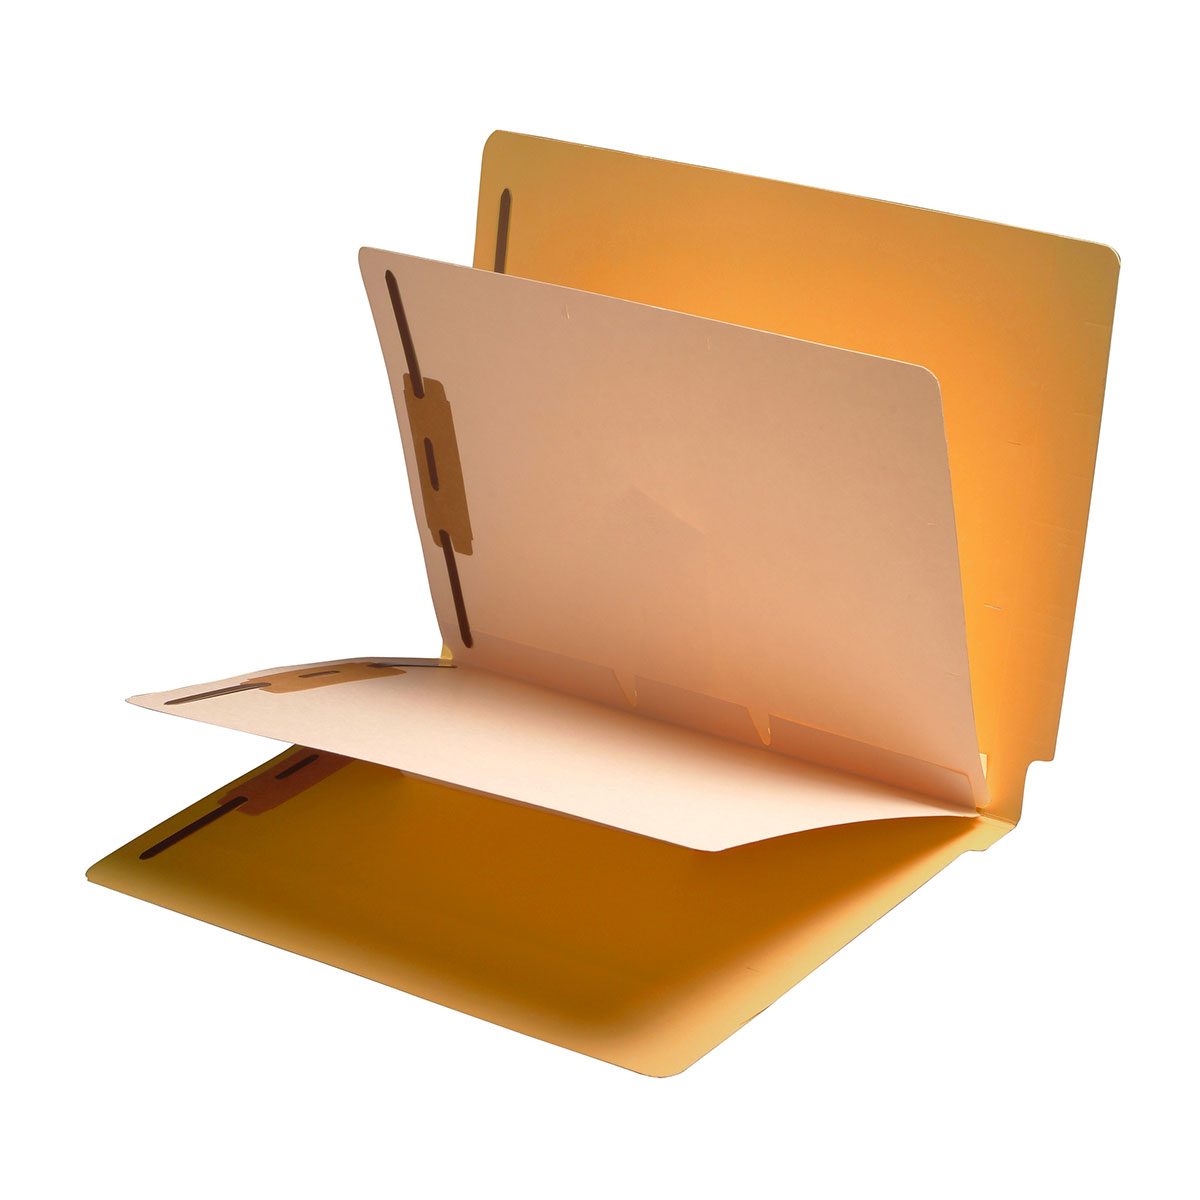 S-9358-GLD - 11 Pt. Goldenrod Folders, Full Cut End Tab, Letter Size, 2 Dividers Installed (Box of 40)